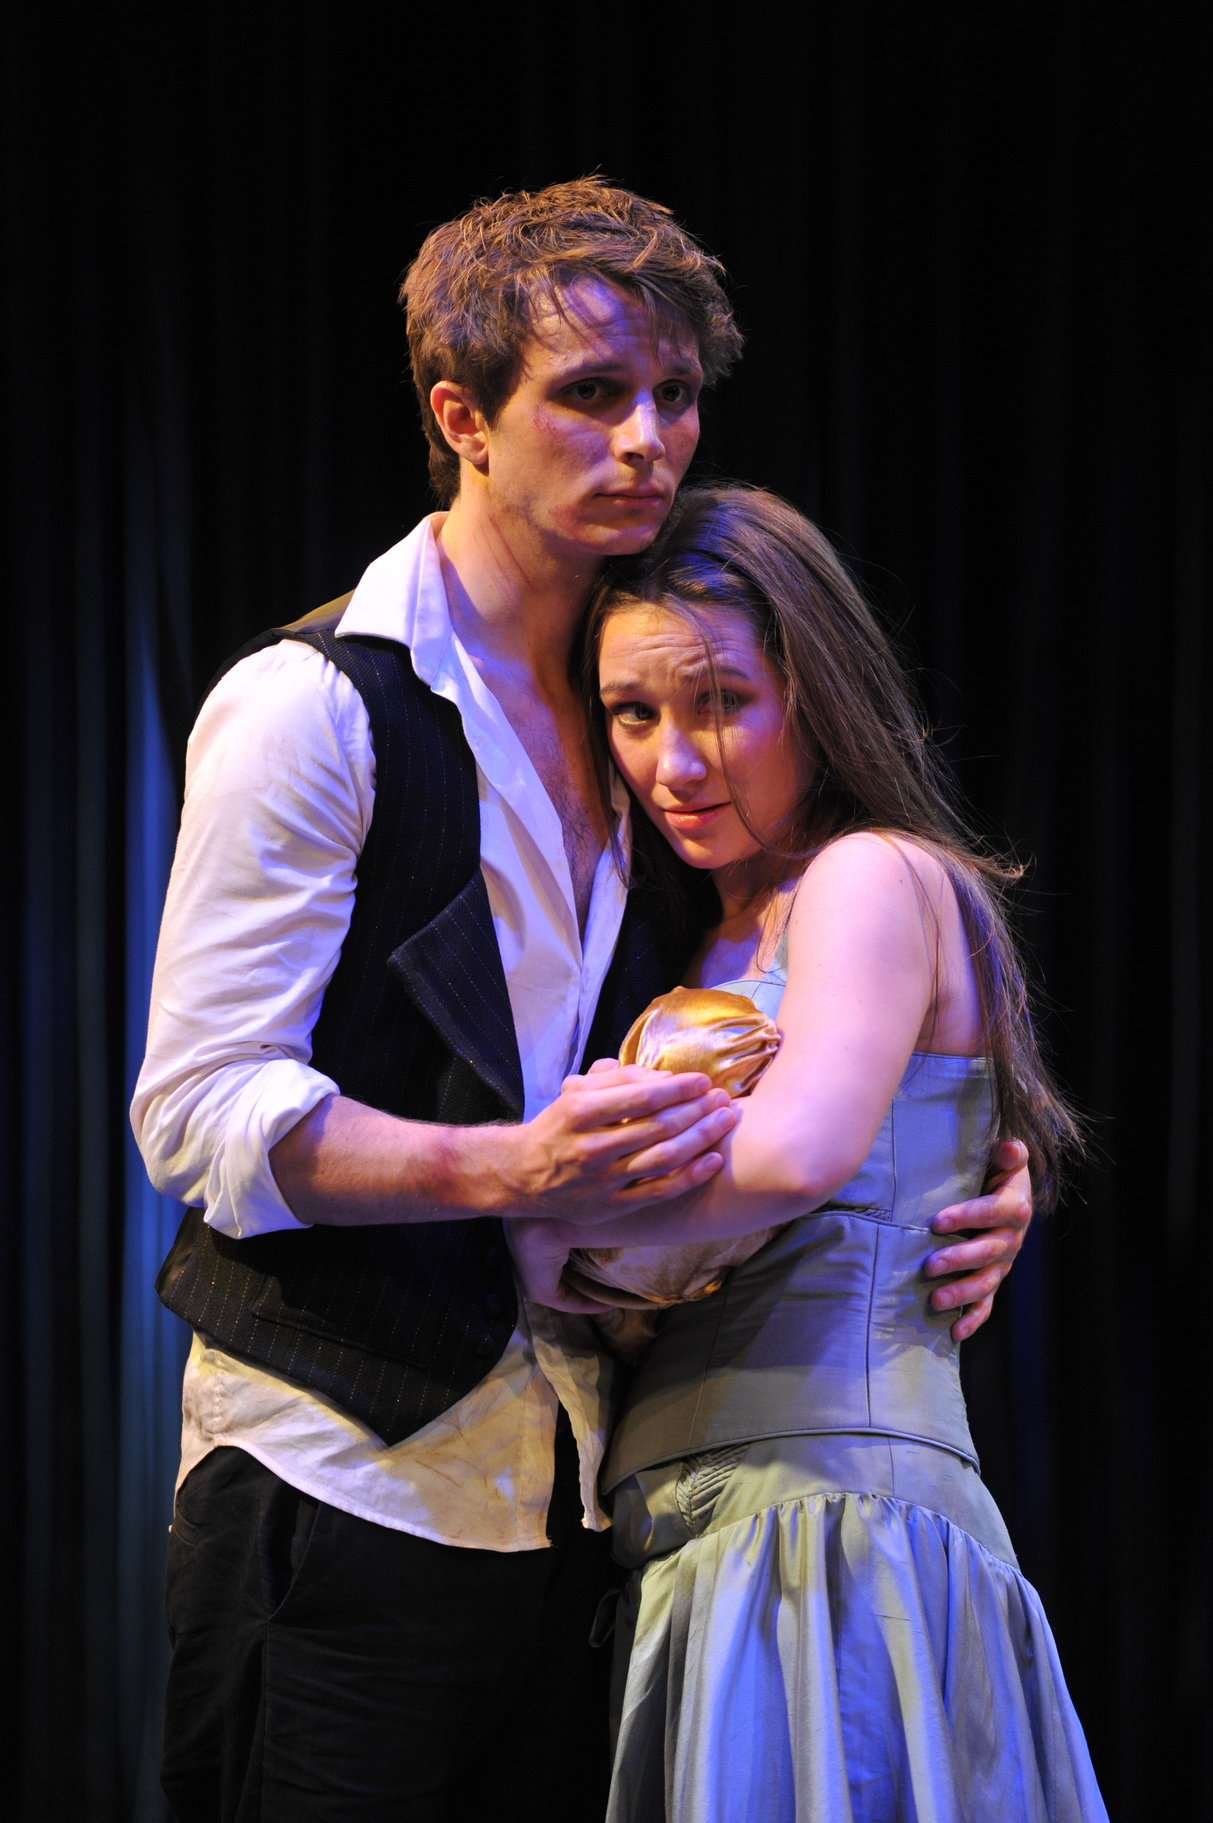 A young man hugs a woman holding a baby.